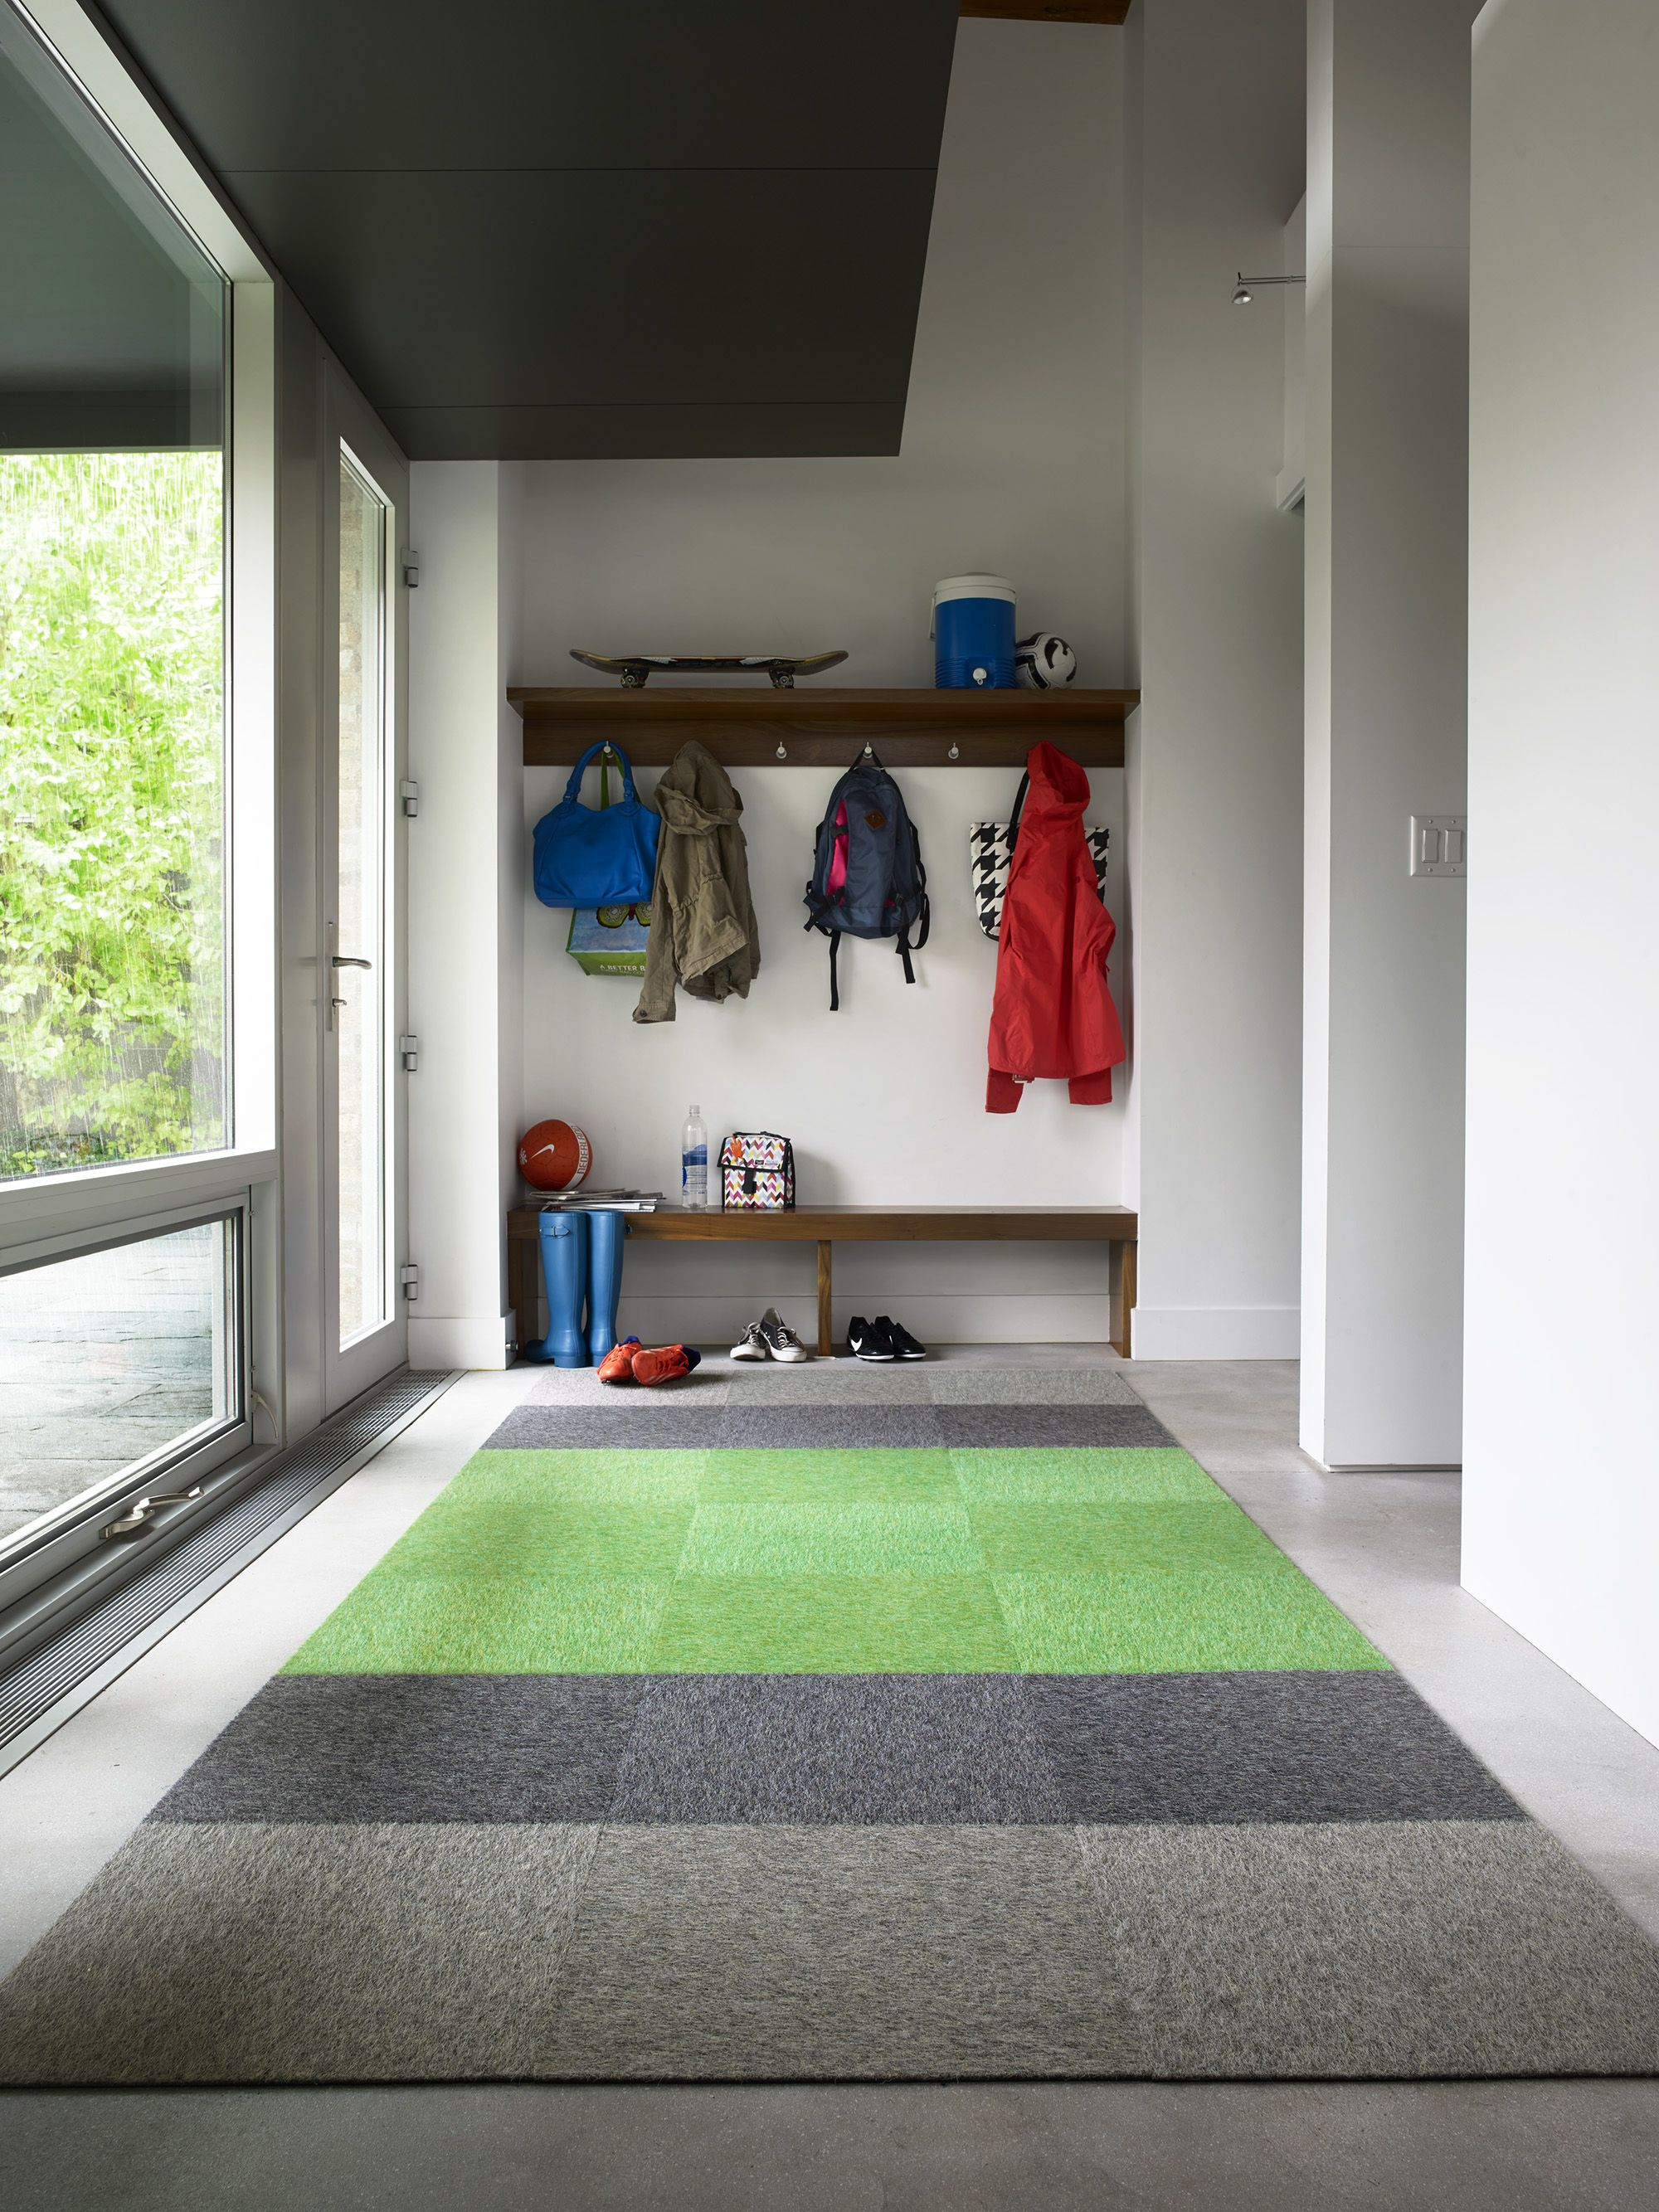 We have the perfect floor solution for your mud room! Our